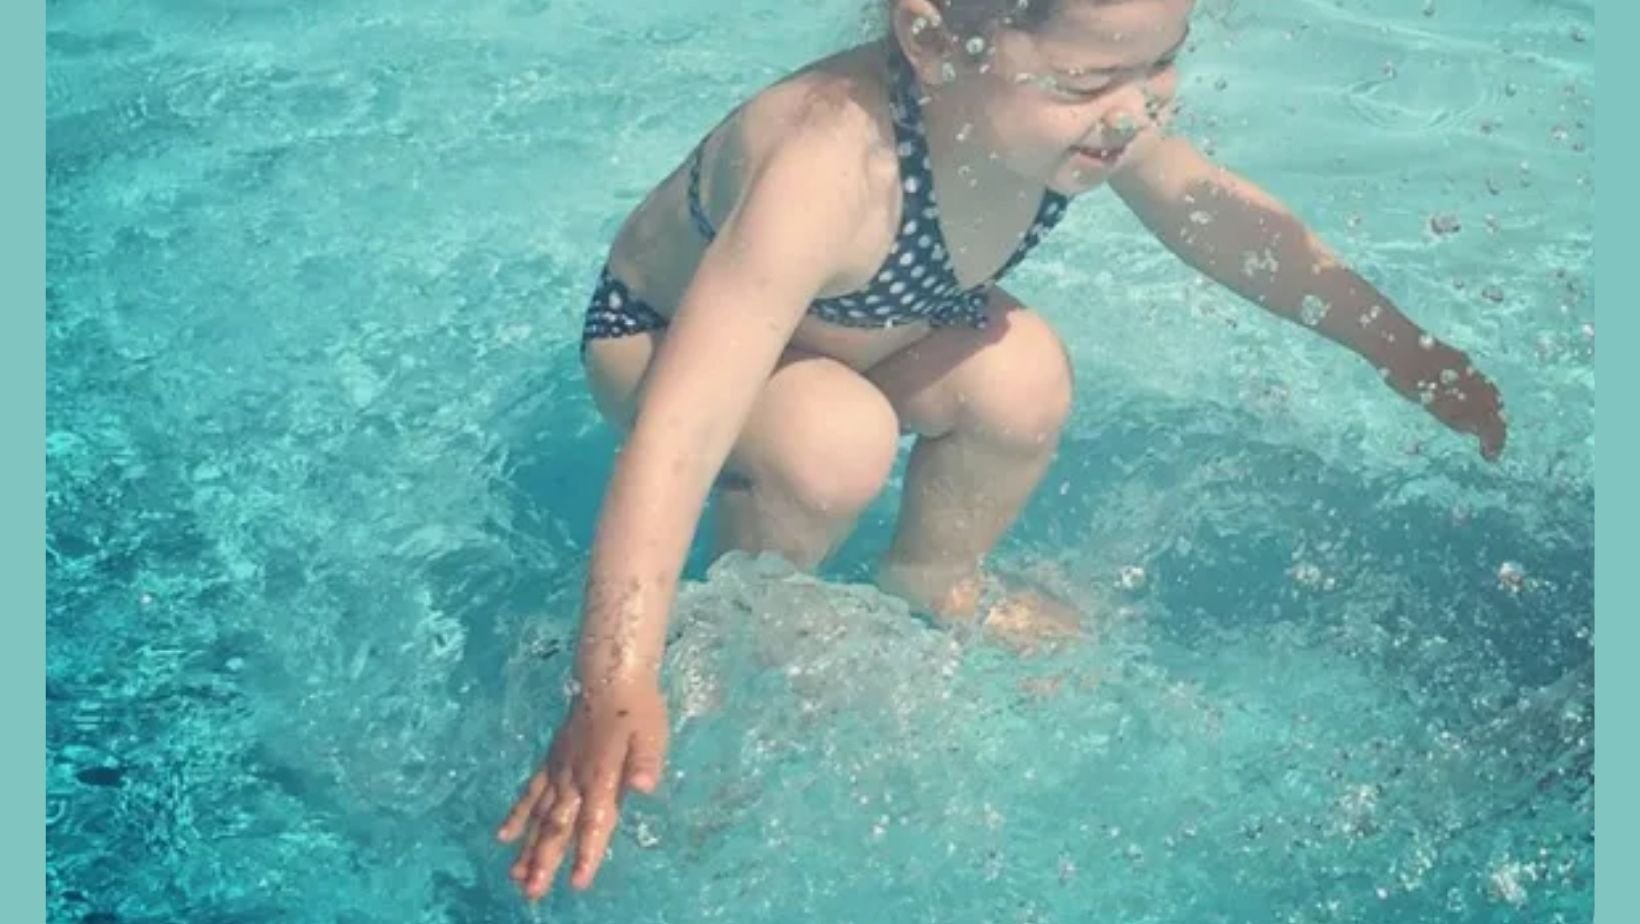 instagram 8.jpg?resize=1200,630 - Is The Girl Underwater Or Jumping In A Pool? Viral Photo Left The Internet Confused